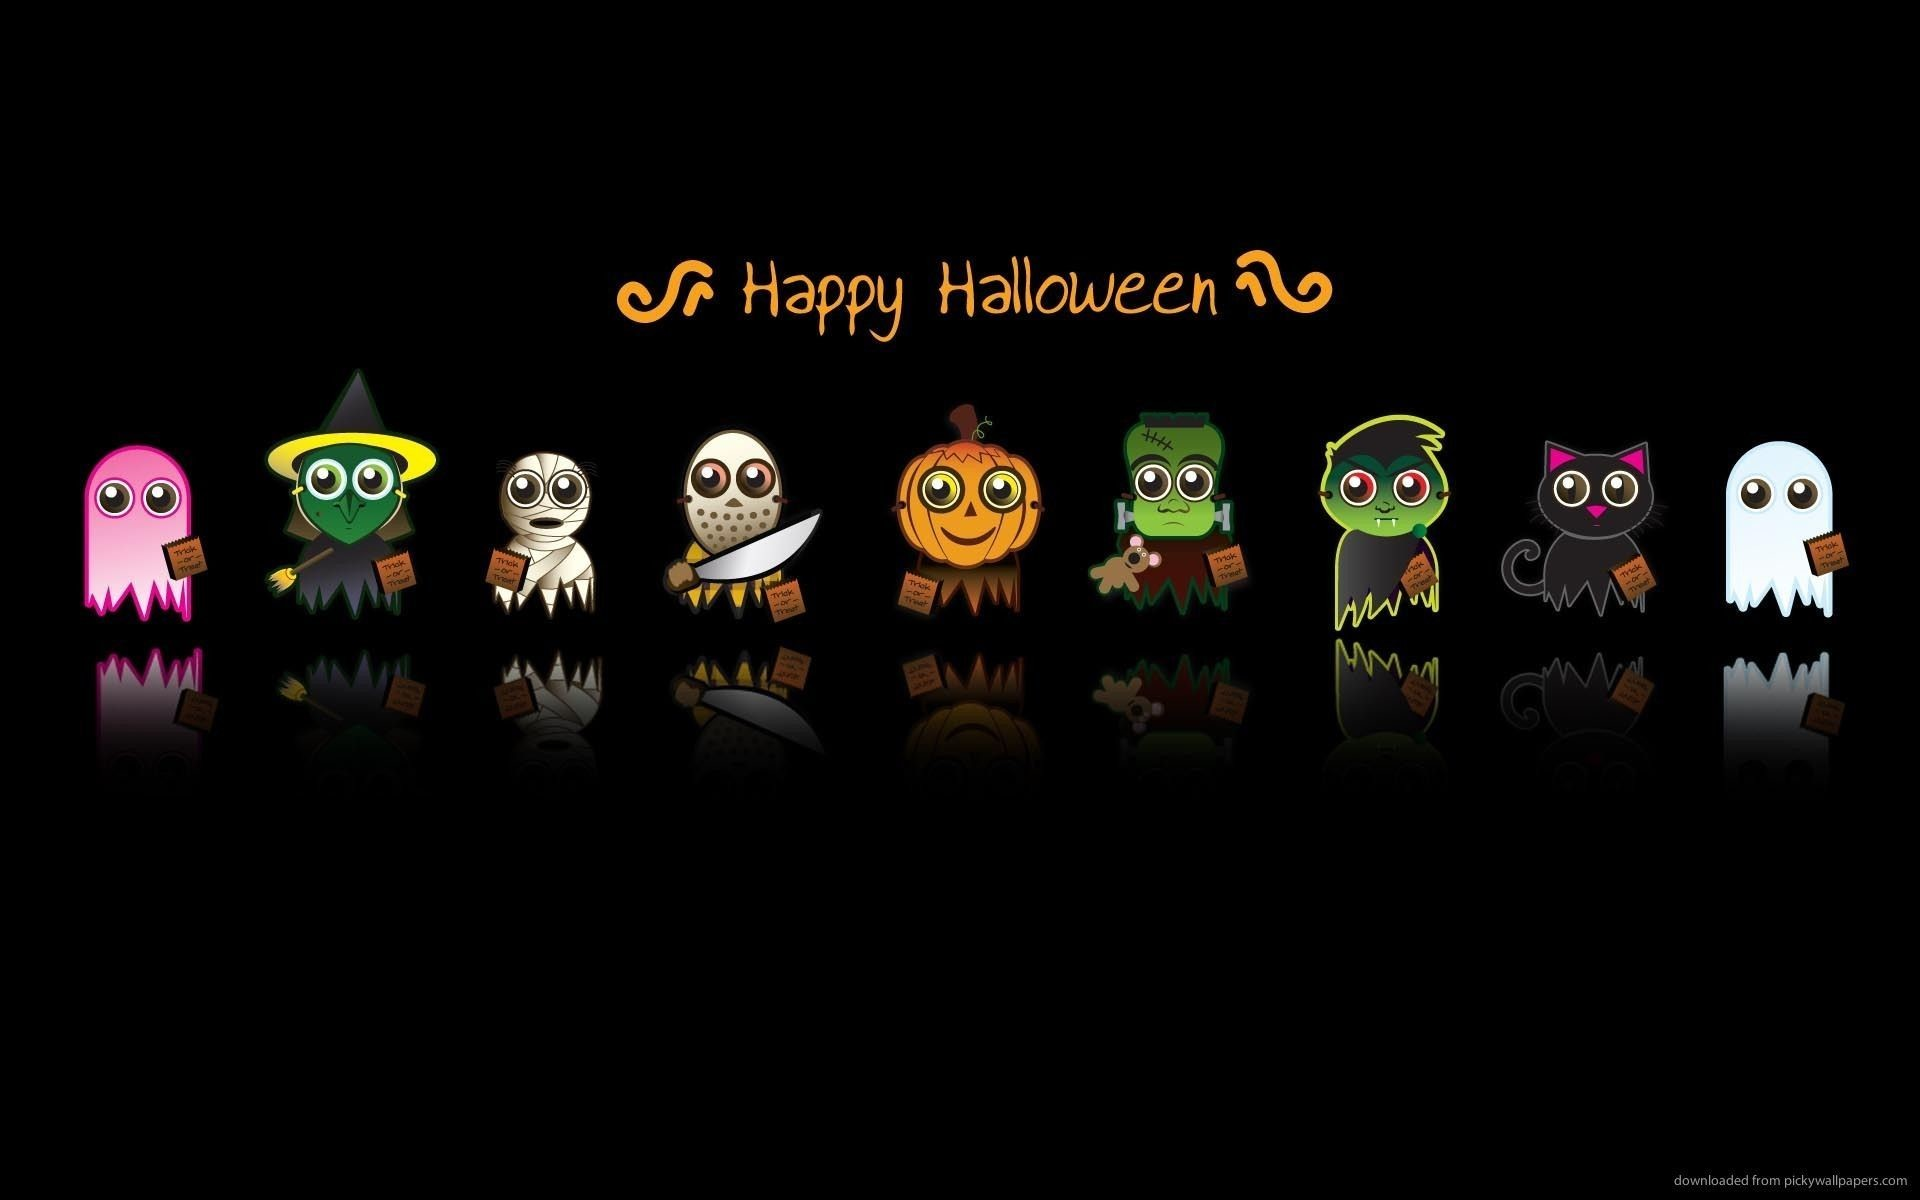 Cute Halloween Wallpaper for Desktop 66 images 1920x1200